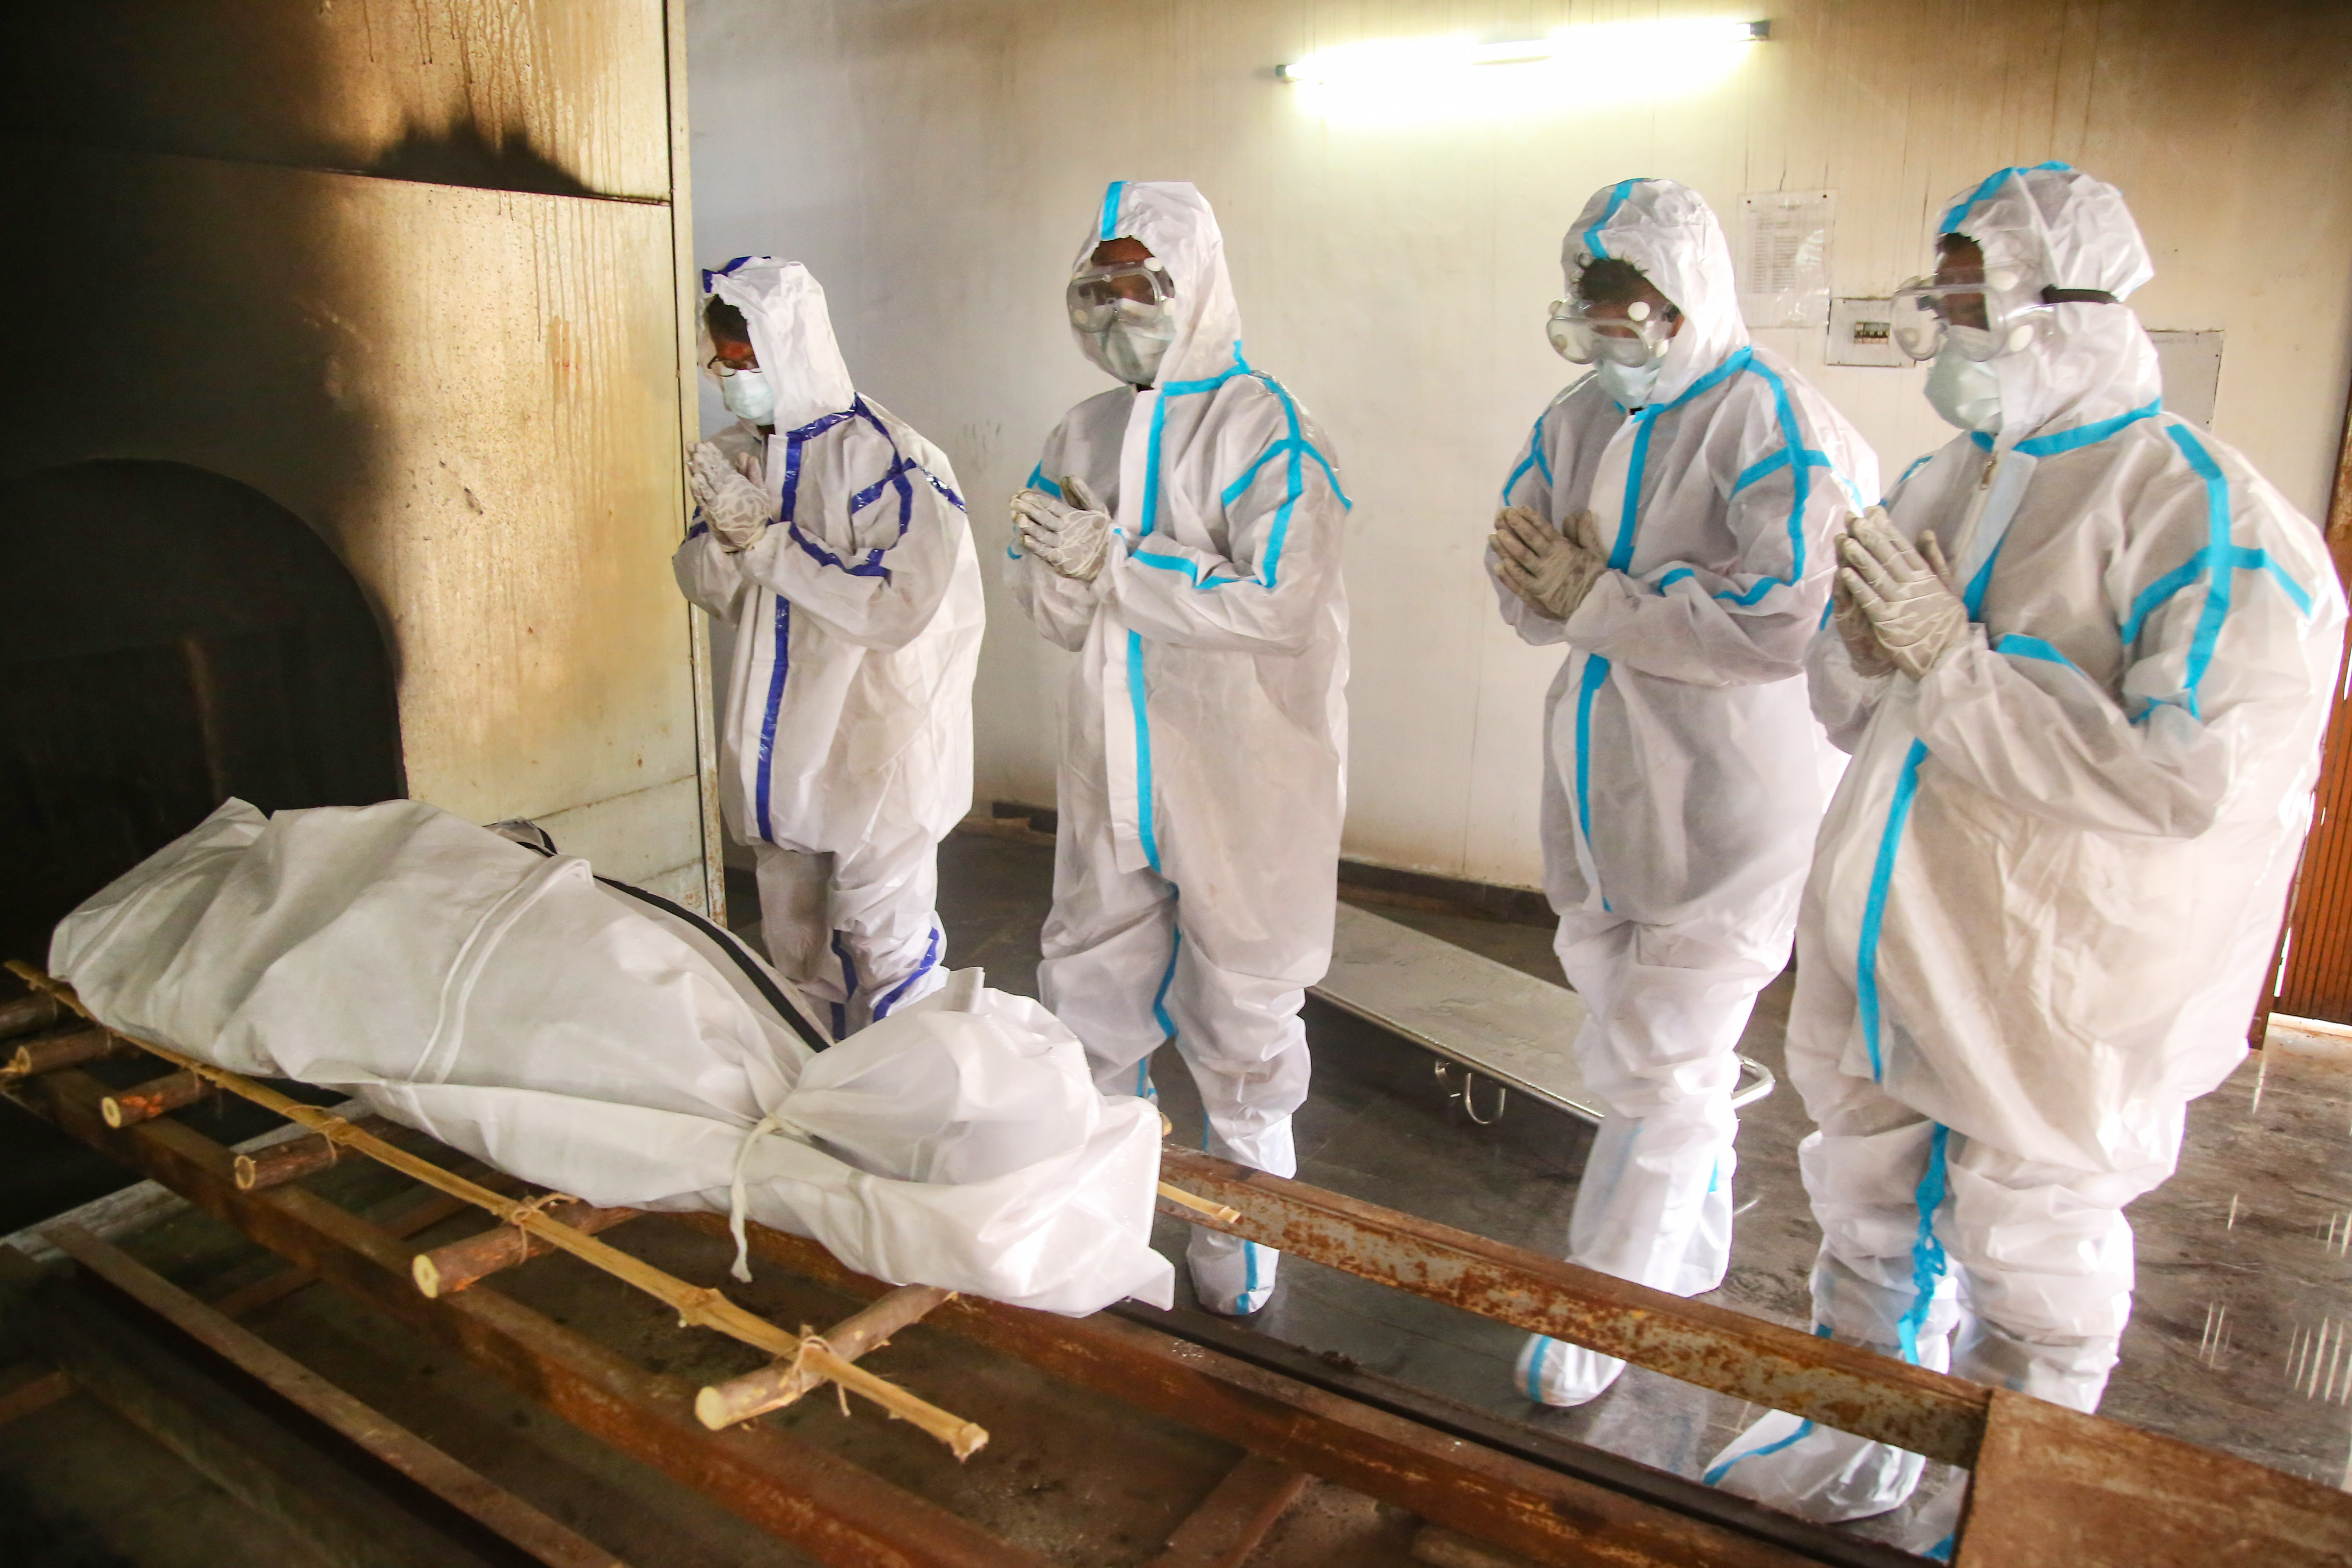 Kanyakumari: Relatives and family members wearing PPE perform prayers before cremating the body of a person who died of COVID-19, amid the ongoing surge in coronavirus cases, at Nagercoil in Kanyakumari district, Monday, April 12, 2021. (PTI Photo)(PTI04_12_2021_000058B)